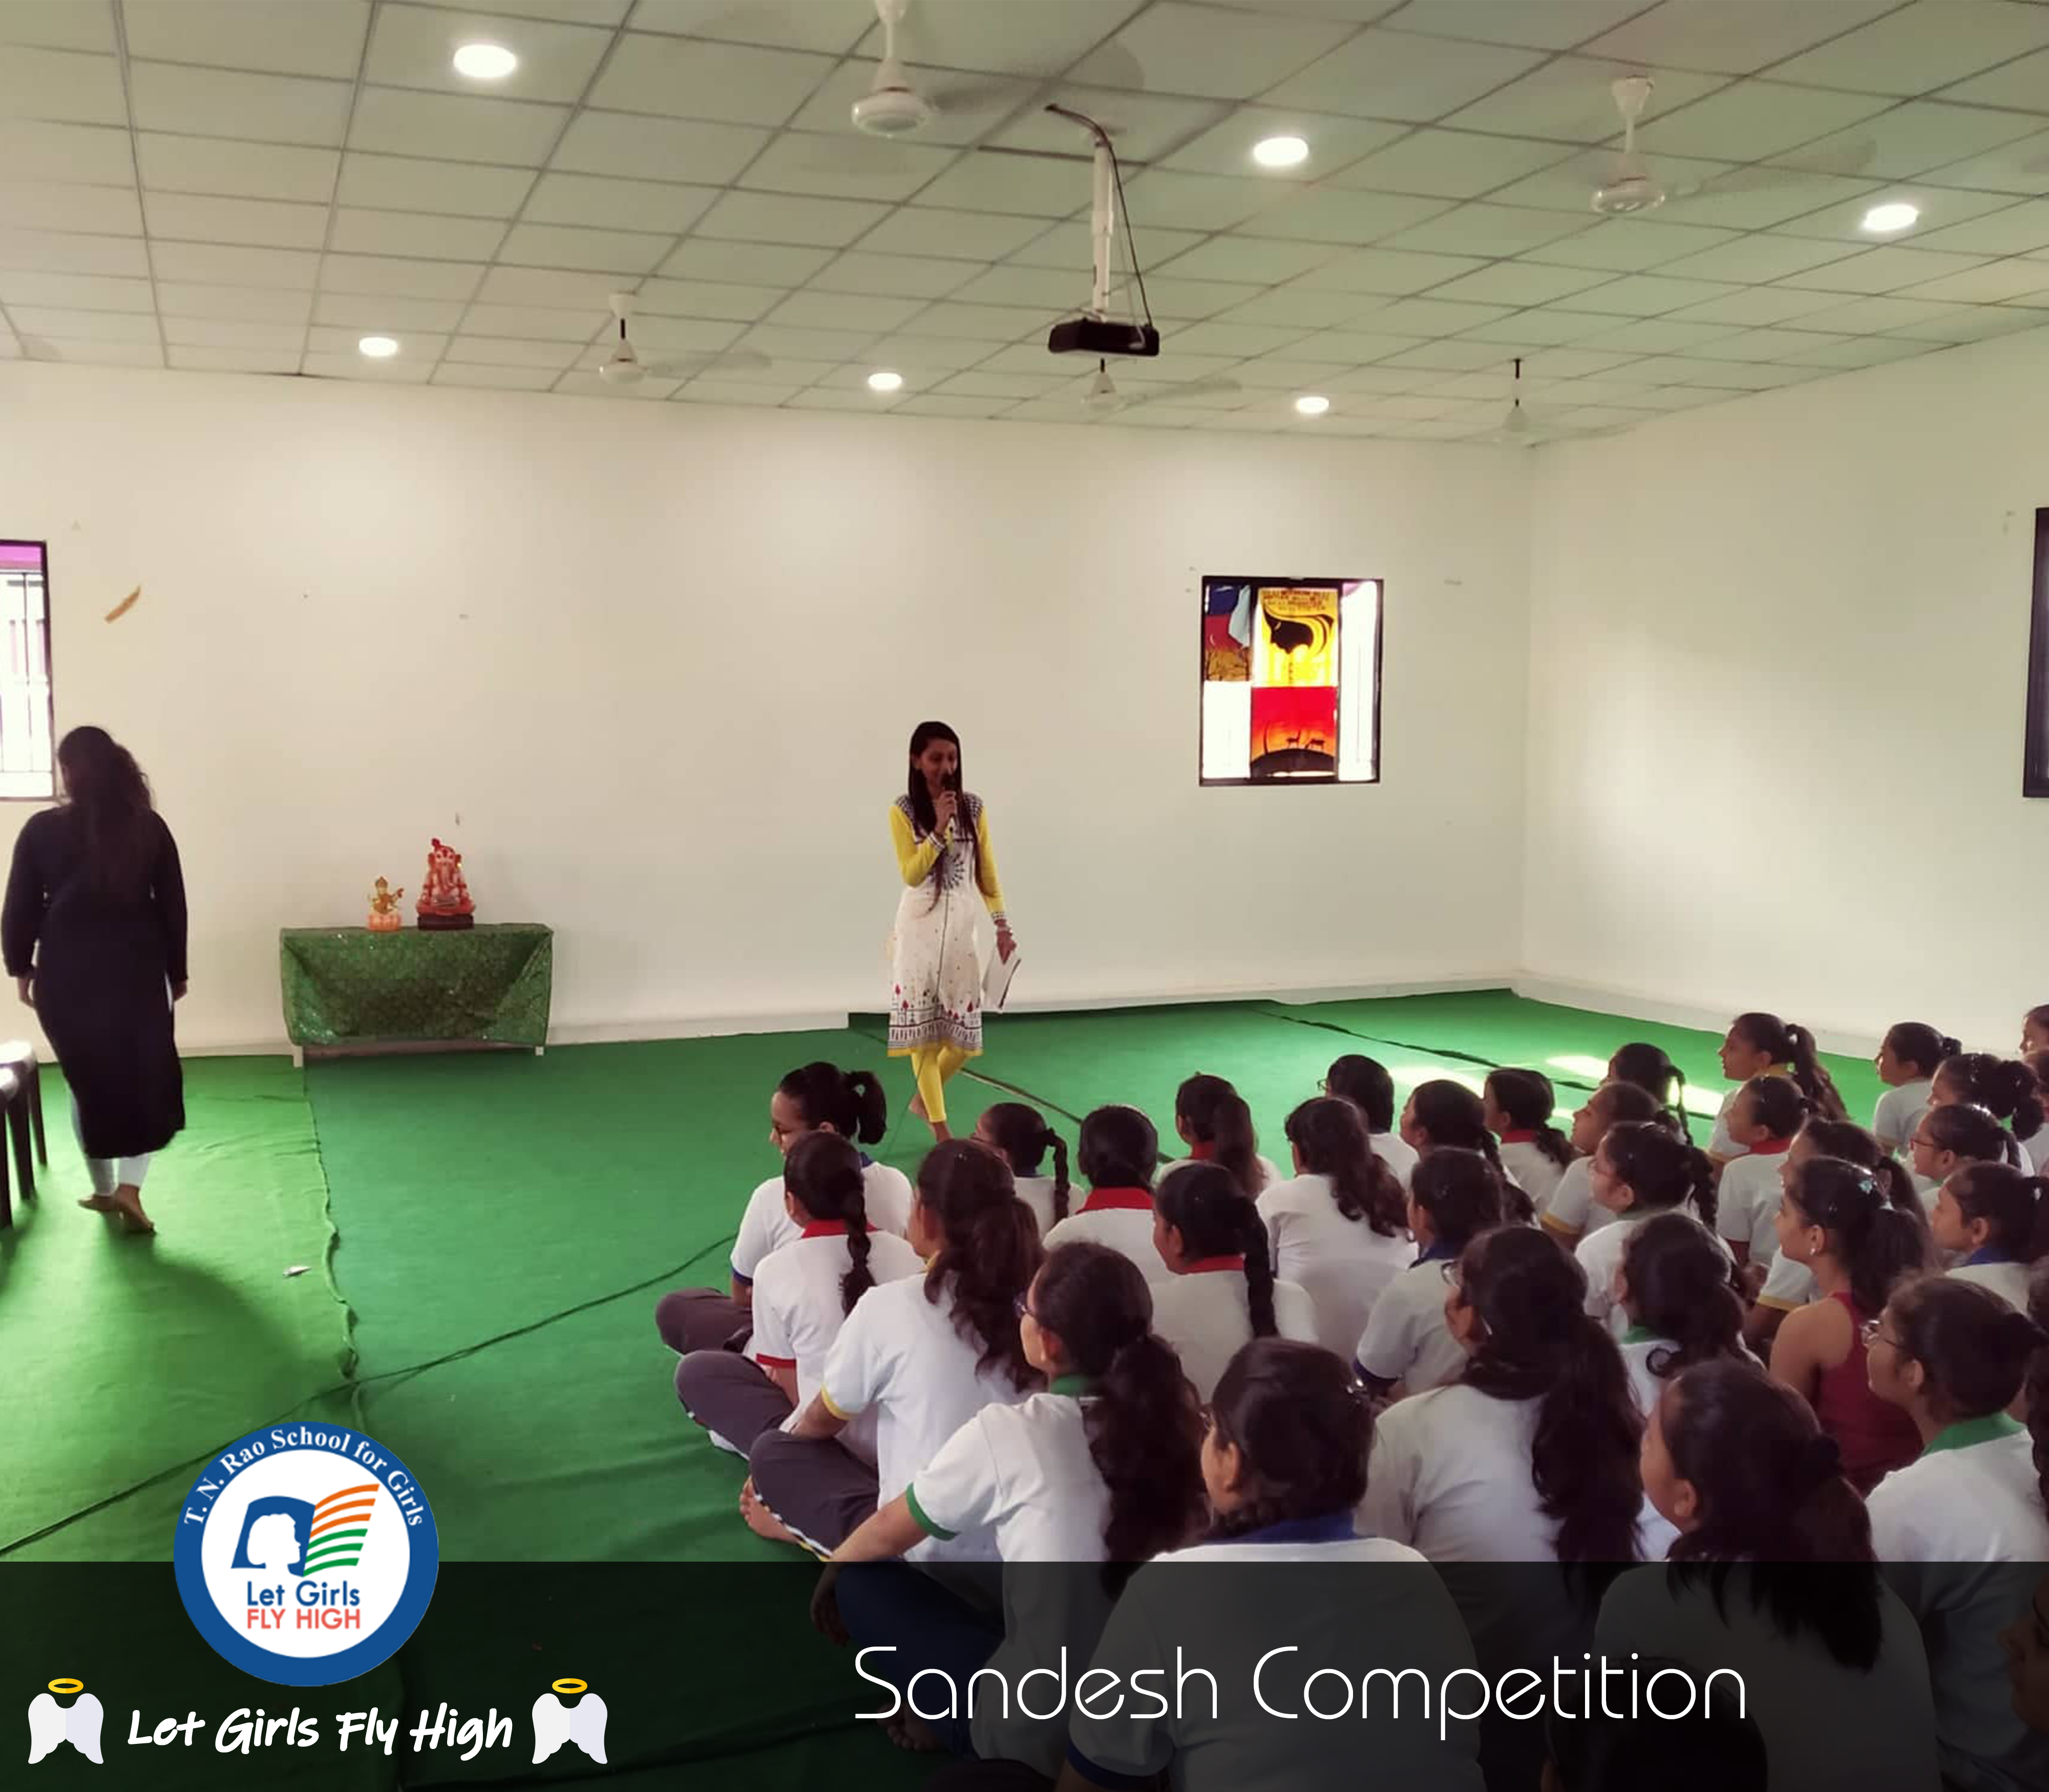 Sandesh competition